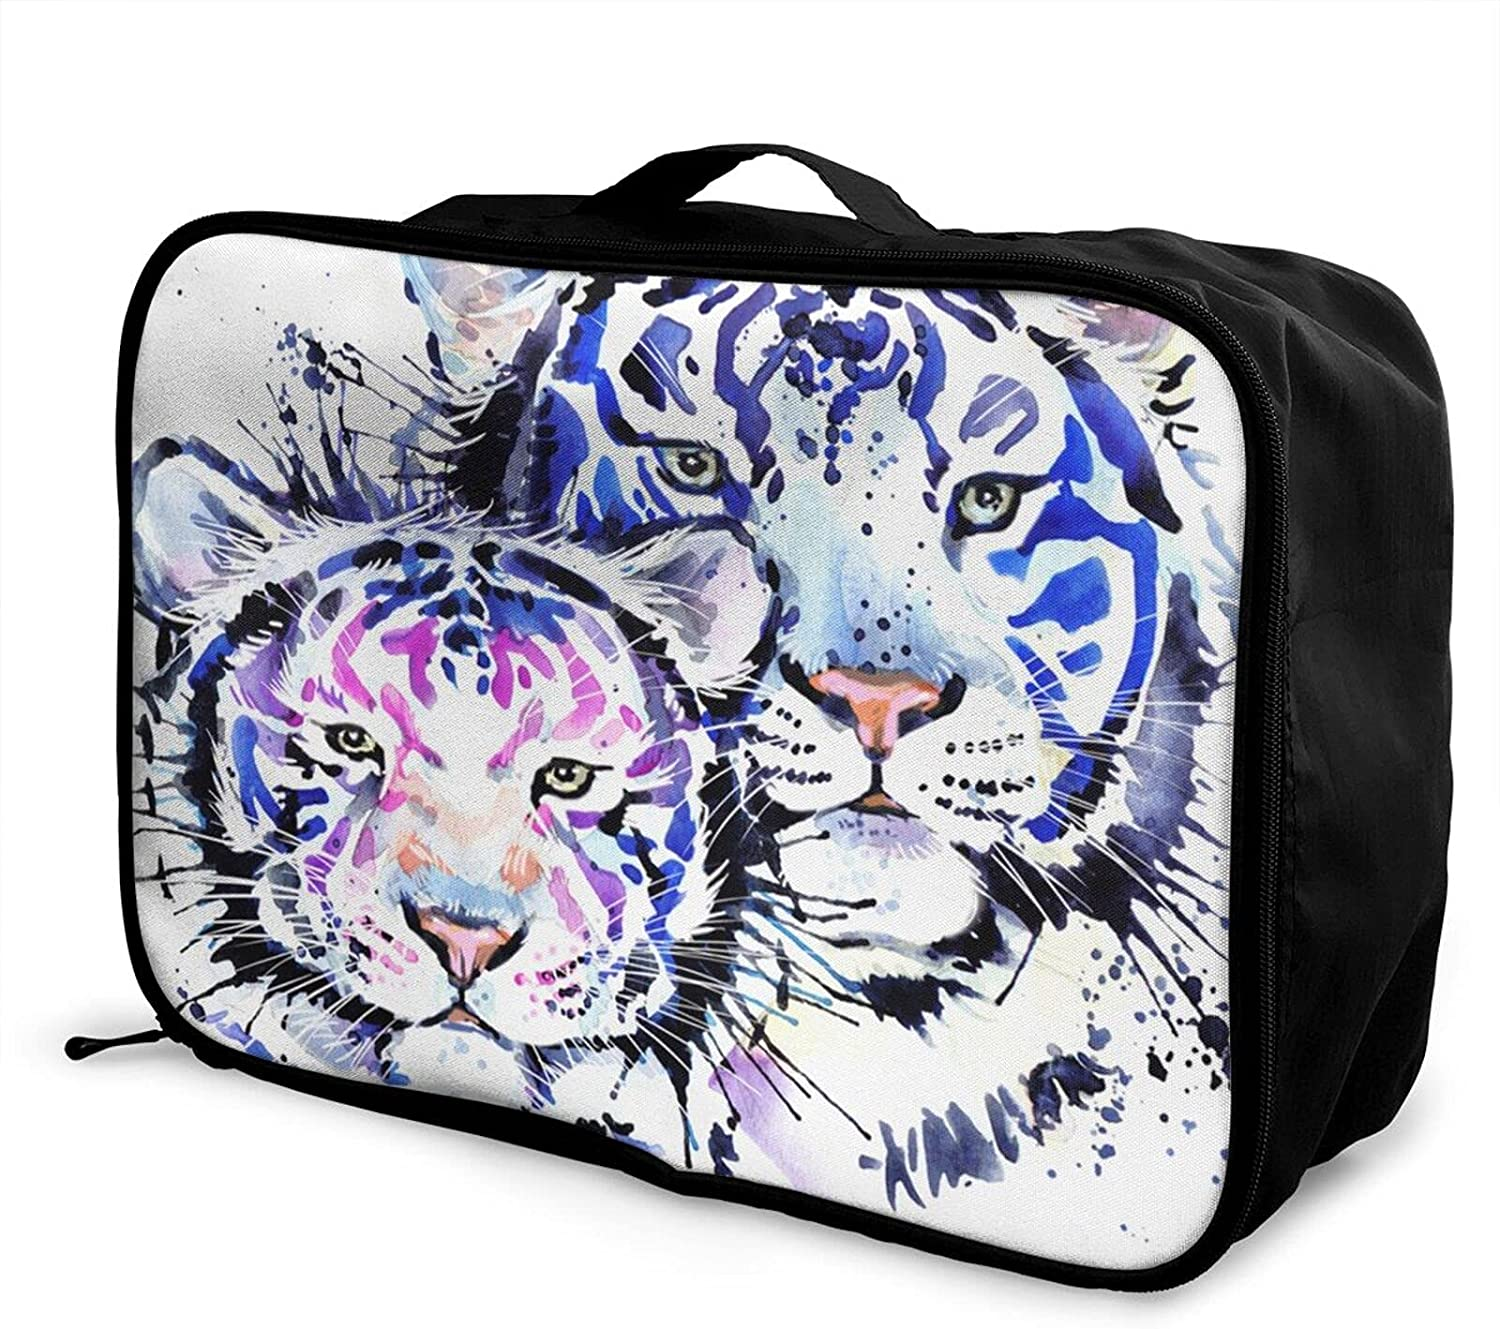 Foldable Travel Bag Tote White Fashionable Discount is also underway Duff Colorful Carry-On Tiger